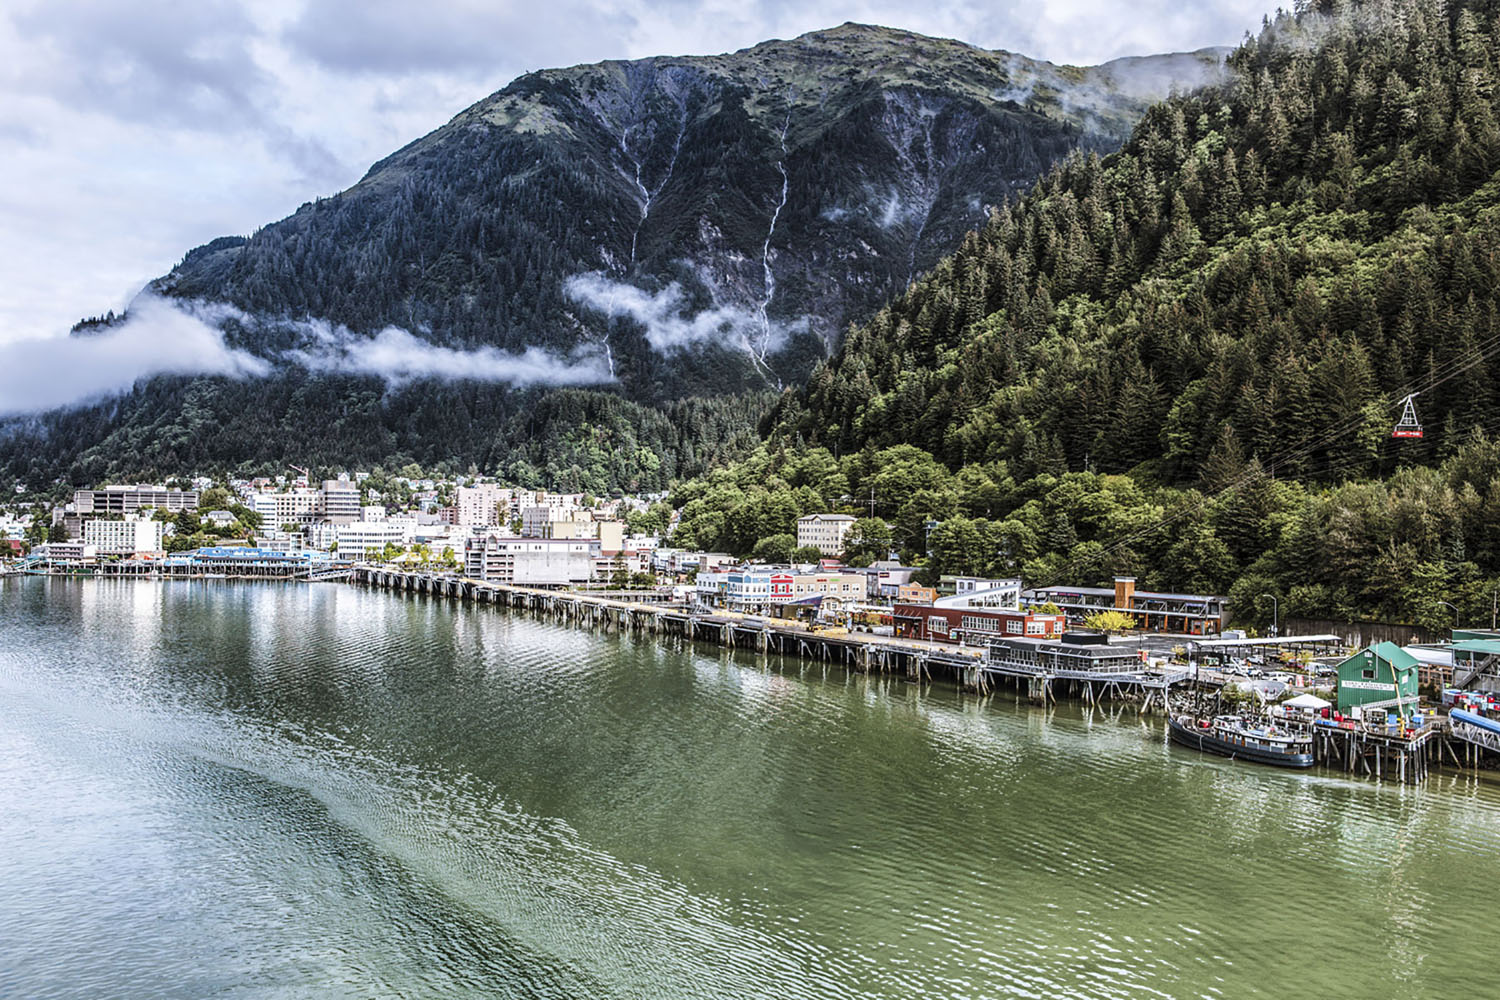 The waterfront of Juneau, Alaska is surrounded by lush green mountains.